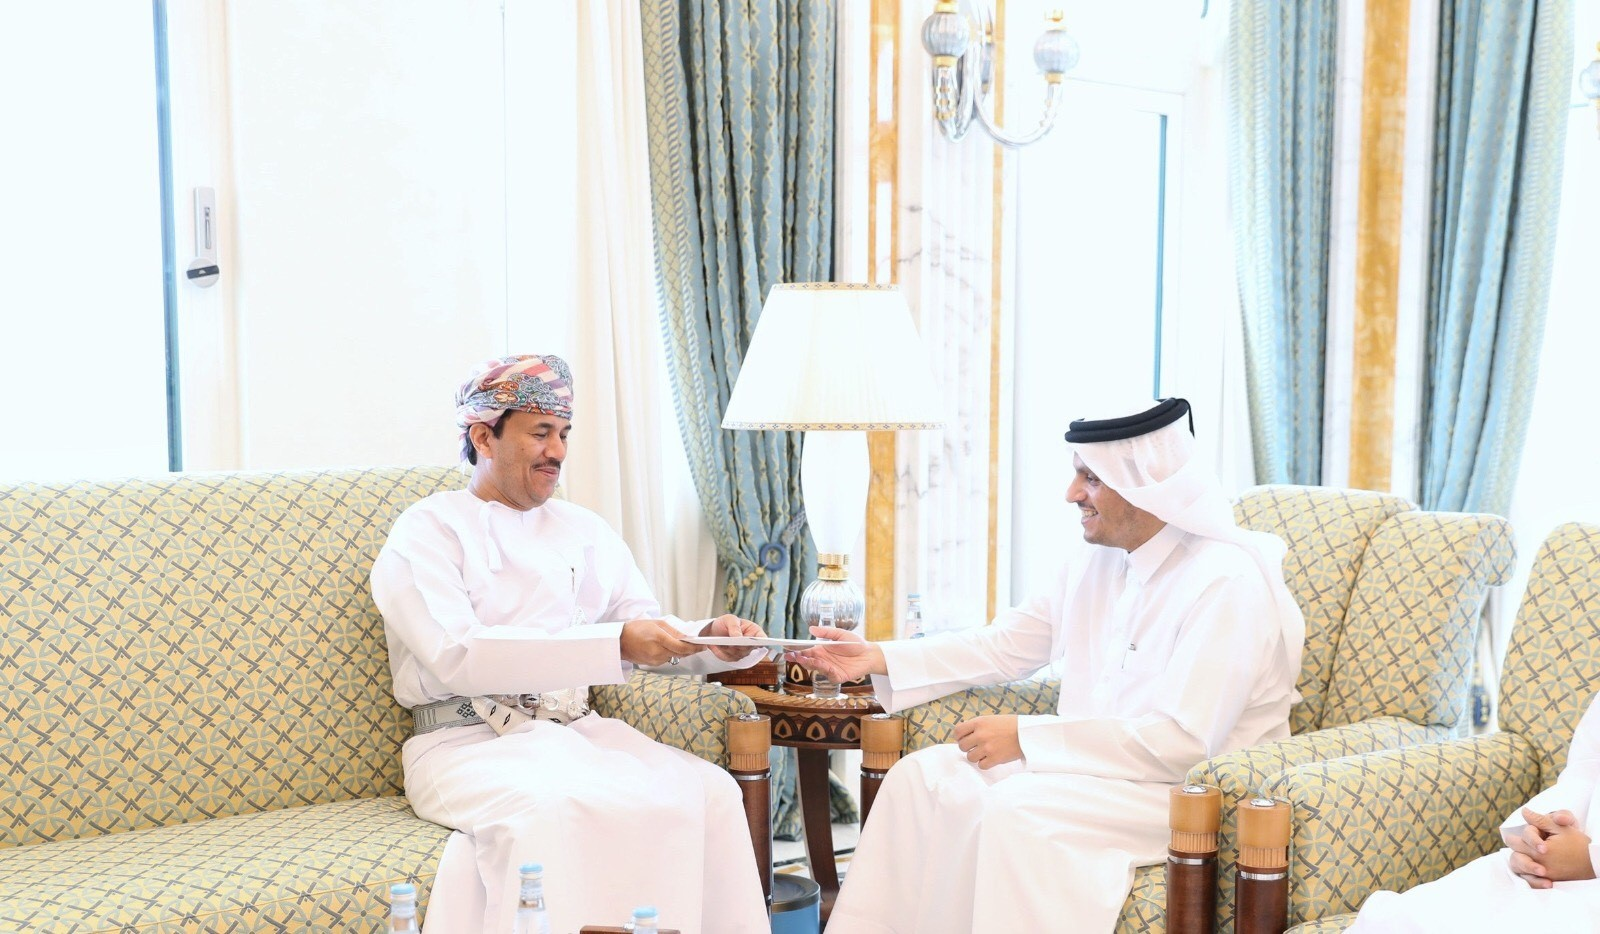 Deputy Prime Minister and Minister of Foreign Affairs receives message from Minister Responsible for Foreign Affairs of Oman